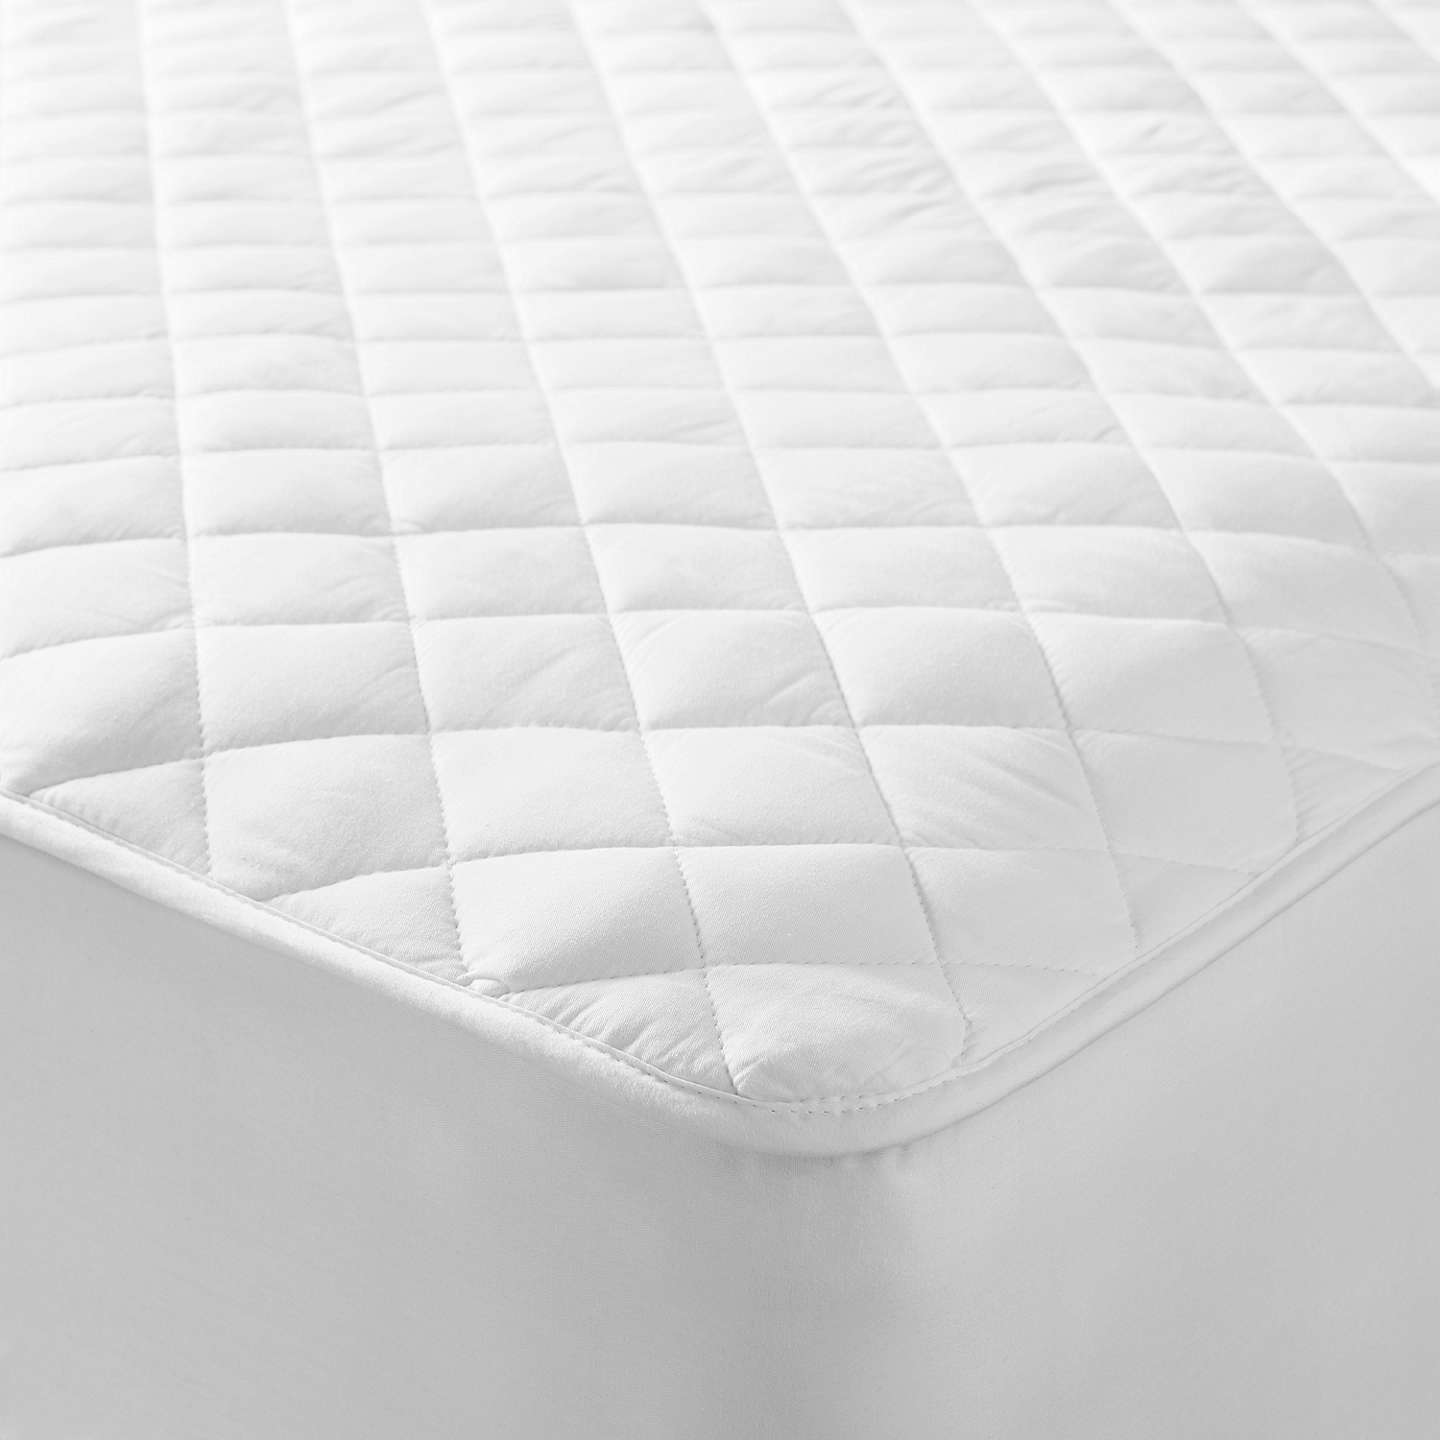 protector p mattress pillow talk waterproof protectors context pillowtalk en